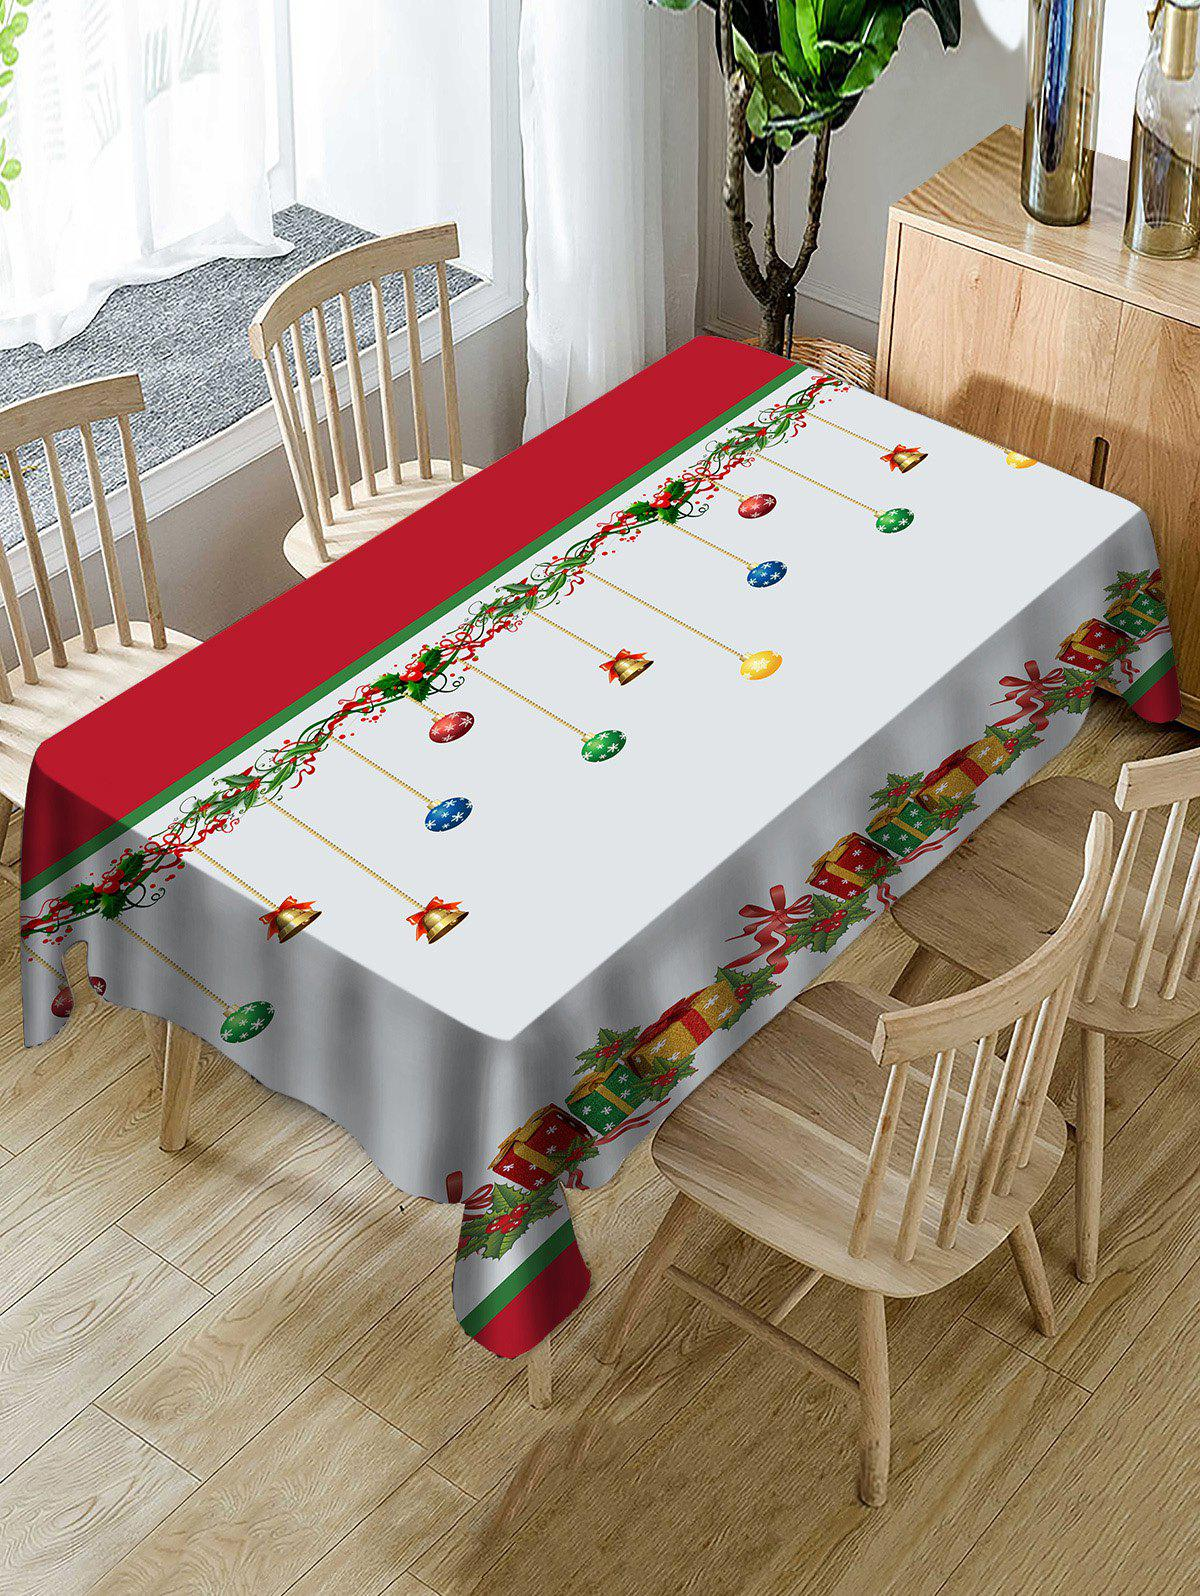 Buy Christmas Gifts Print Fabric Waterproof Tablecloth